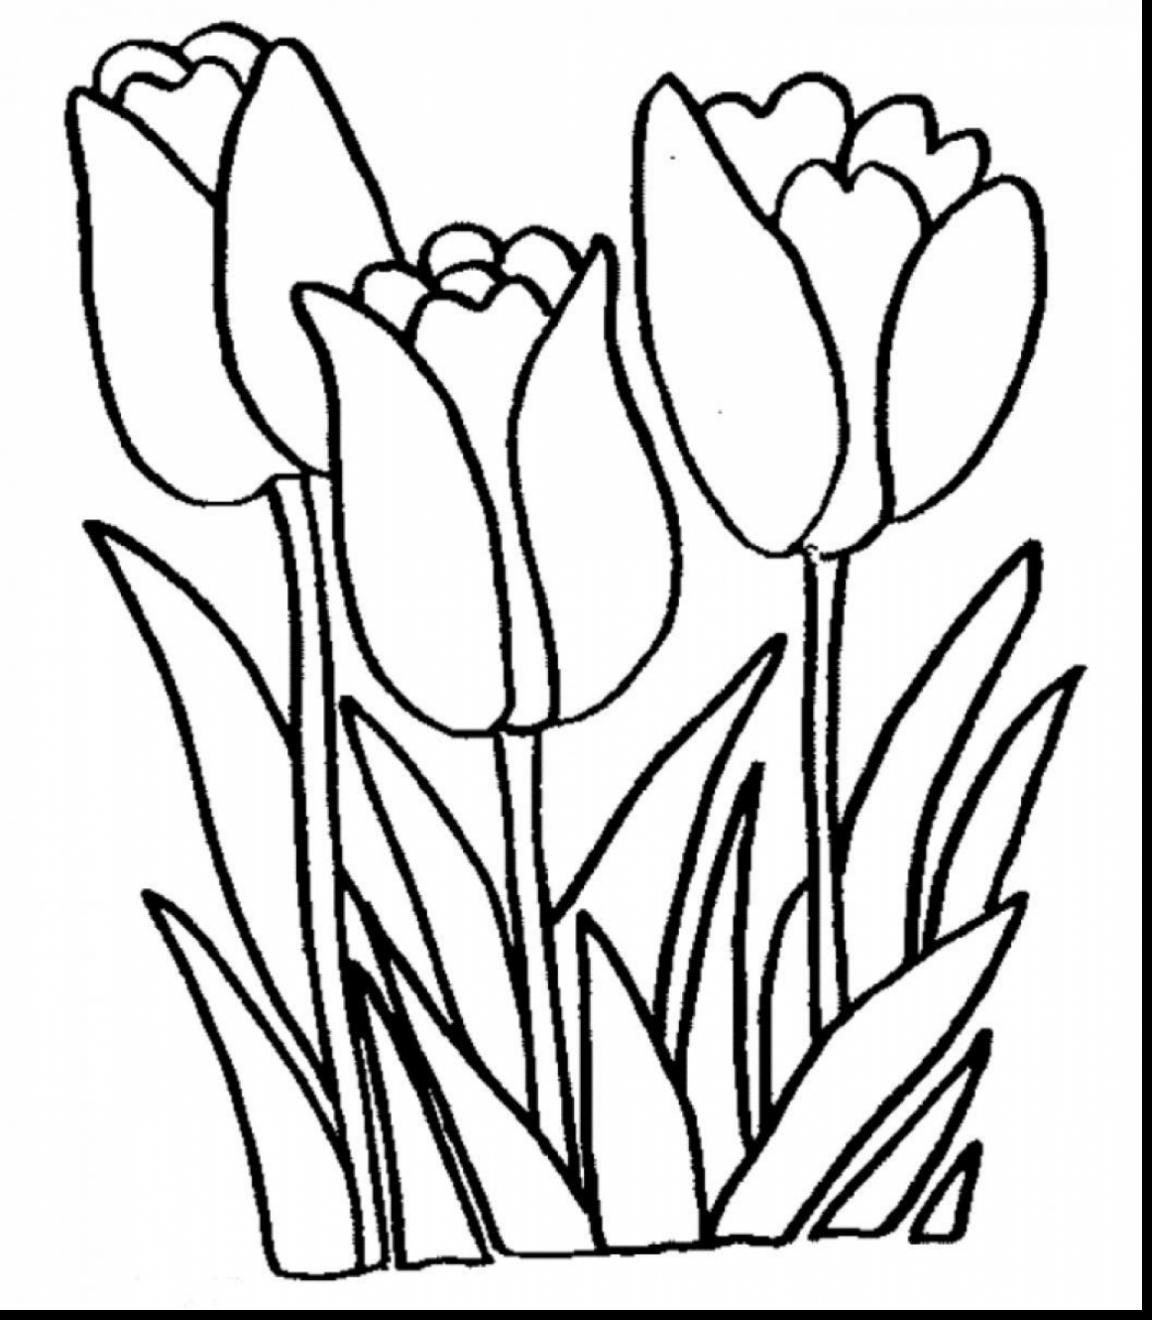 1152x1320 Arum Lily Coloring Pages For Kids Page Flowers Peace Frog Pad